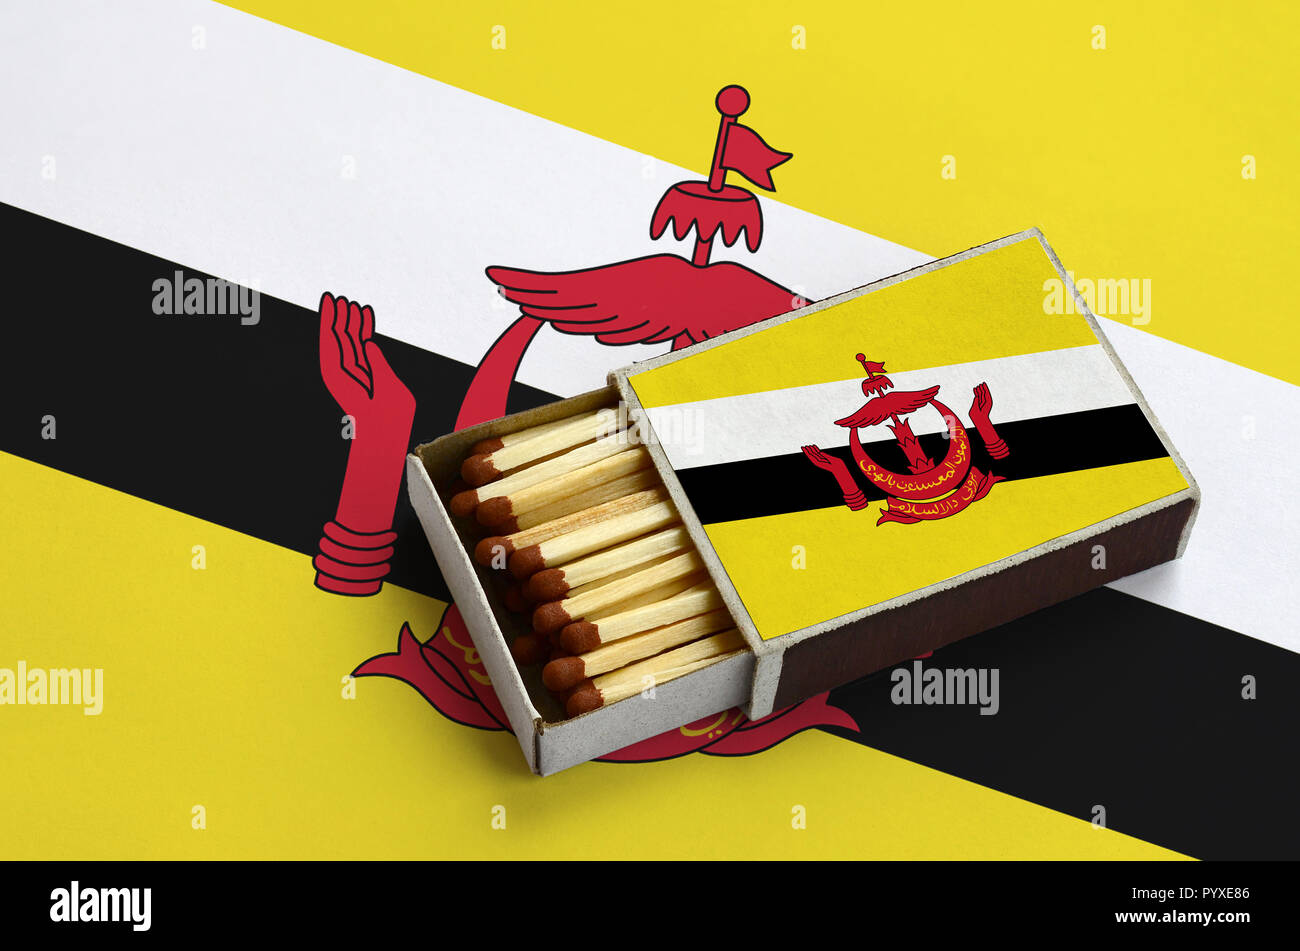 Brunei Darussalam flag  is shown in an open matchbox, which is filled with matches and lies on a large flag. - Stock Image